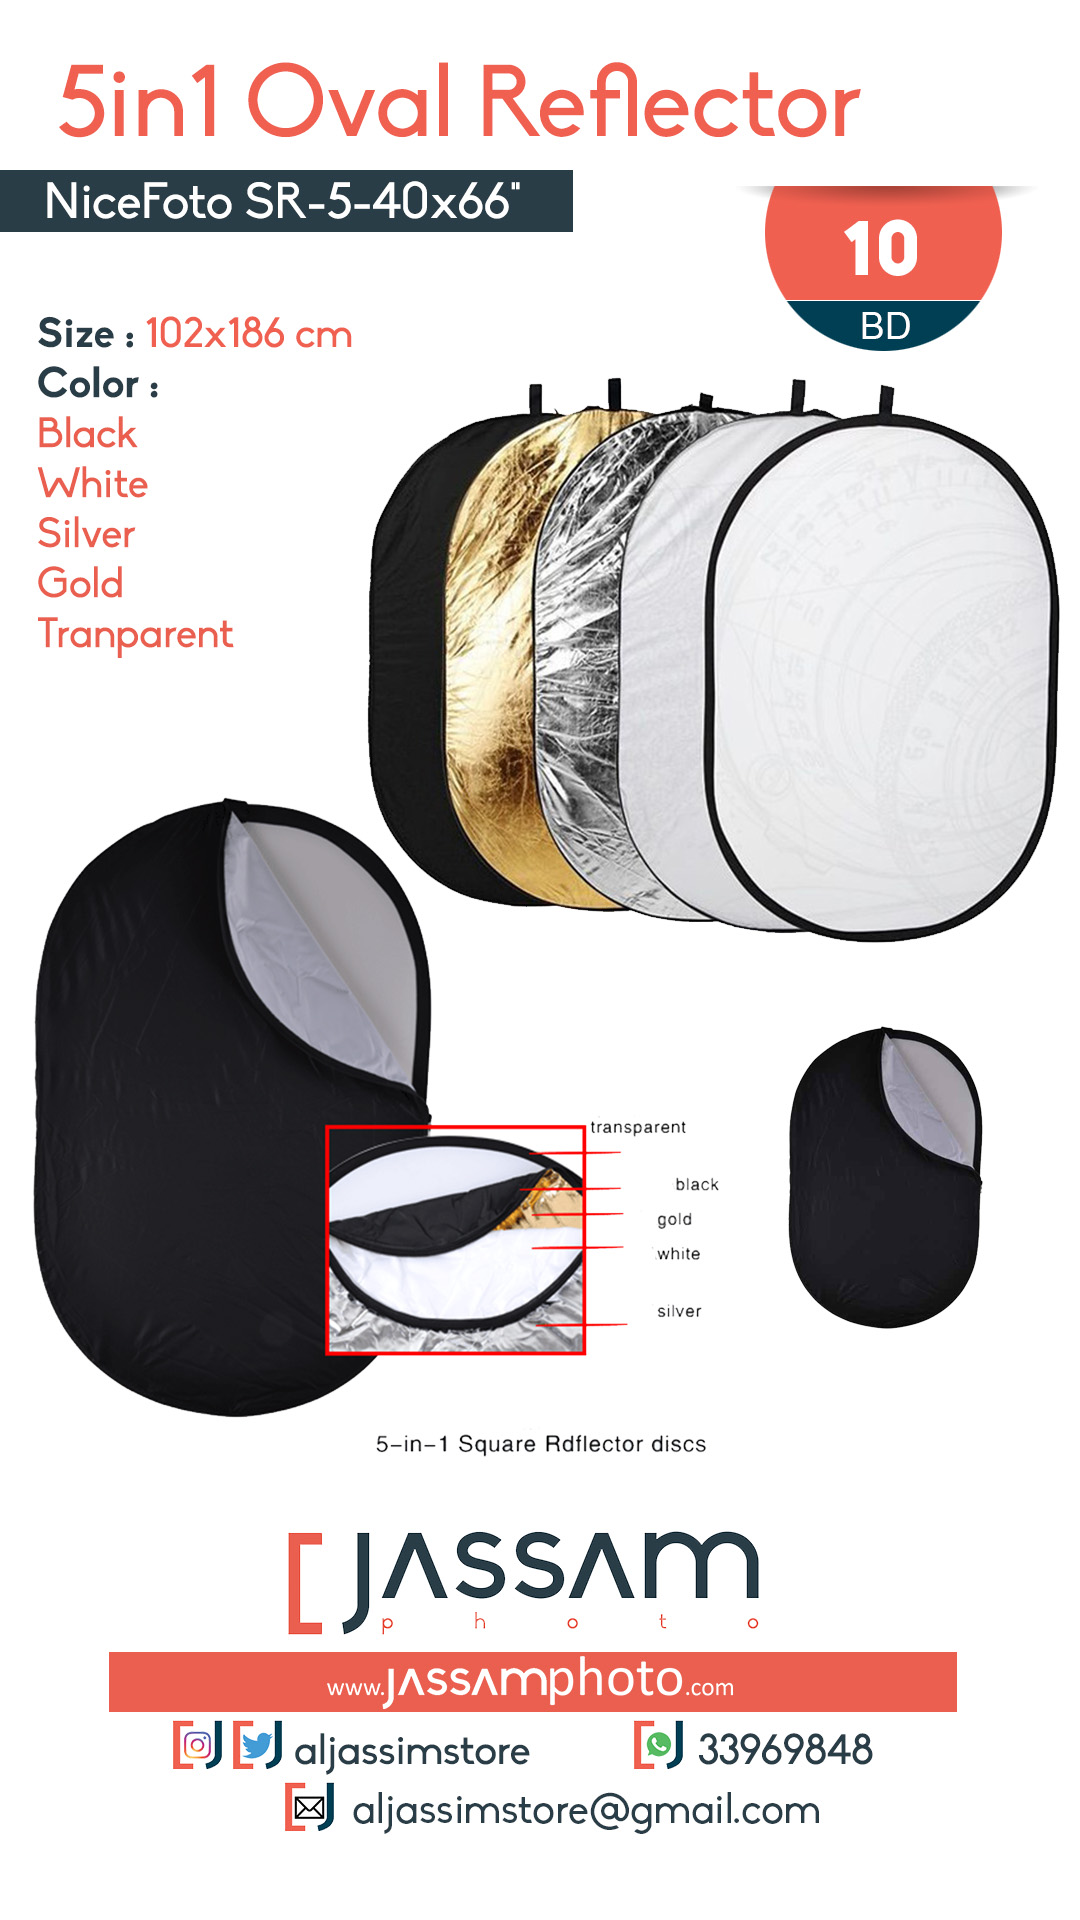 5in1 Oval Reflector